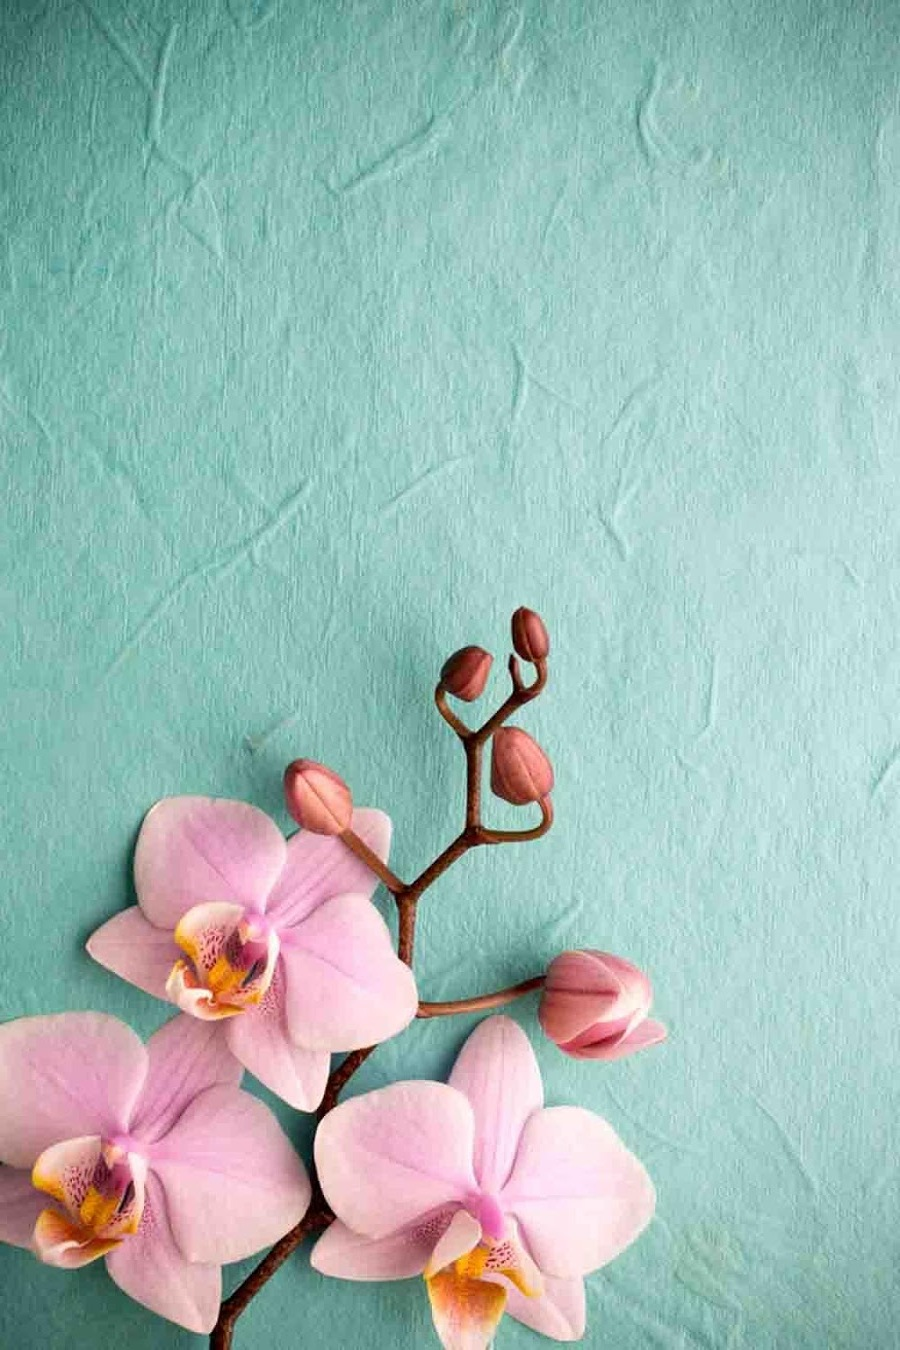 Cute Background Wallpapers For Whatsapp Pink Orchid Wallpaper Iphone 3d Iphone Wallpaper